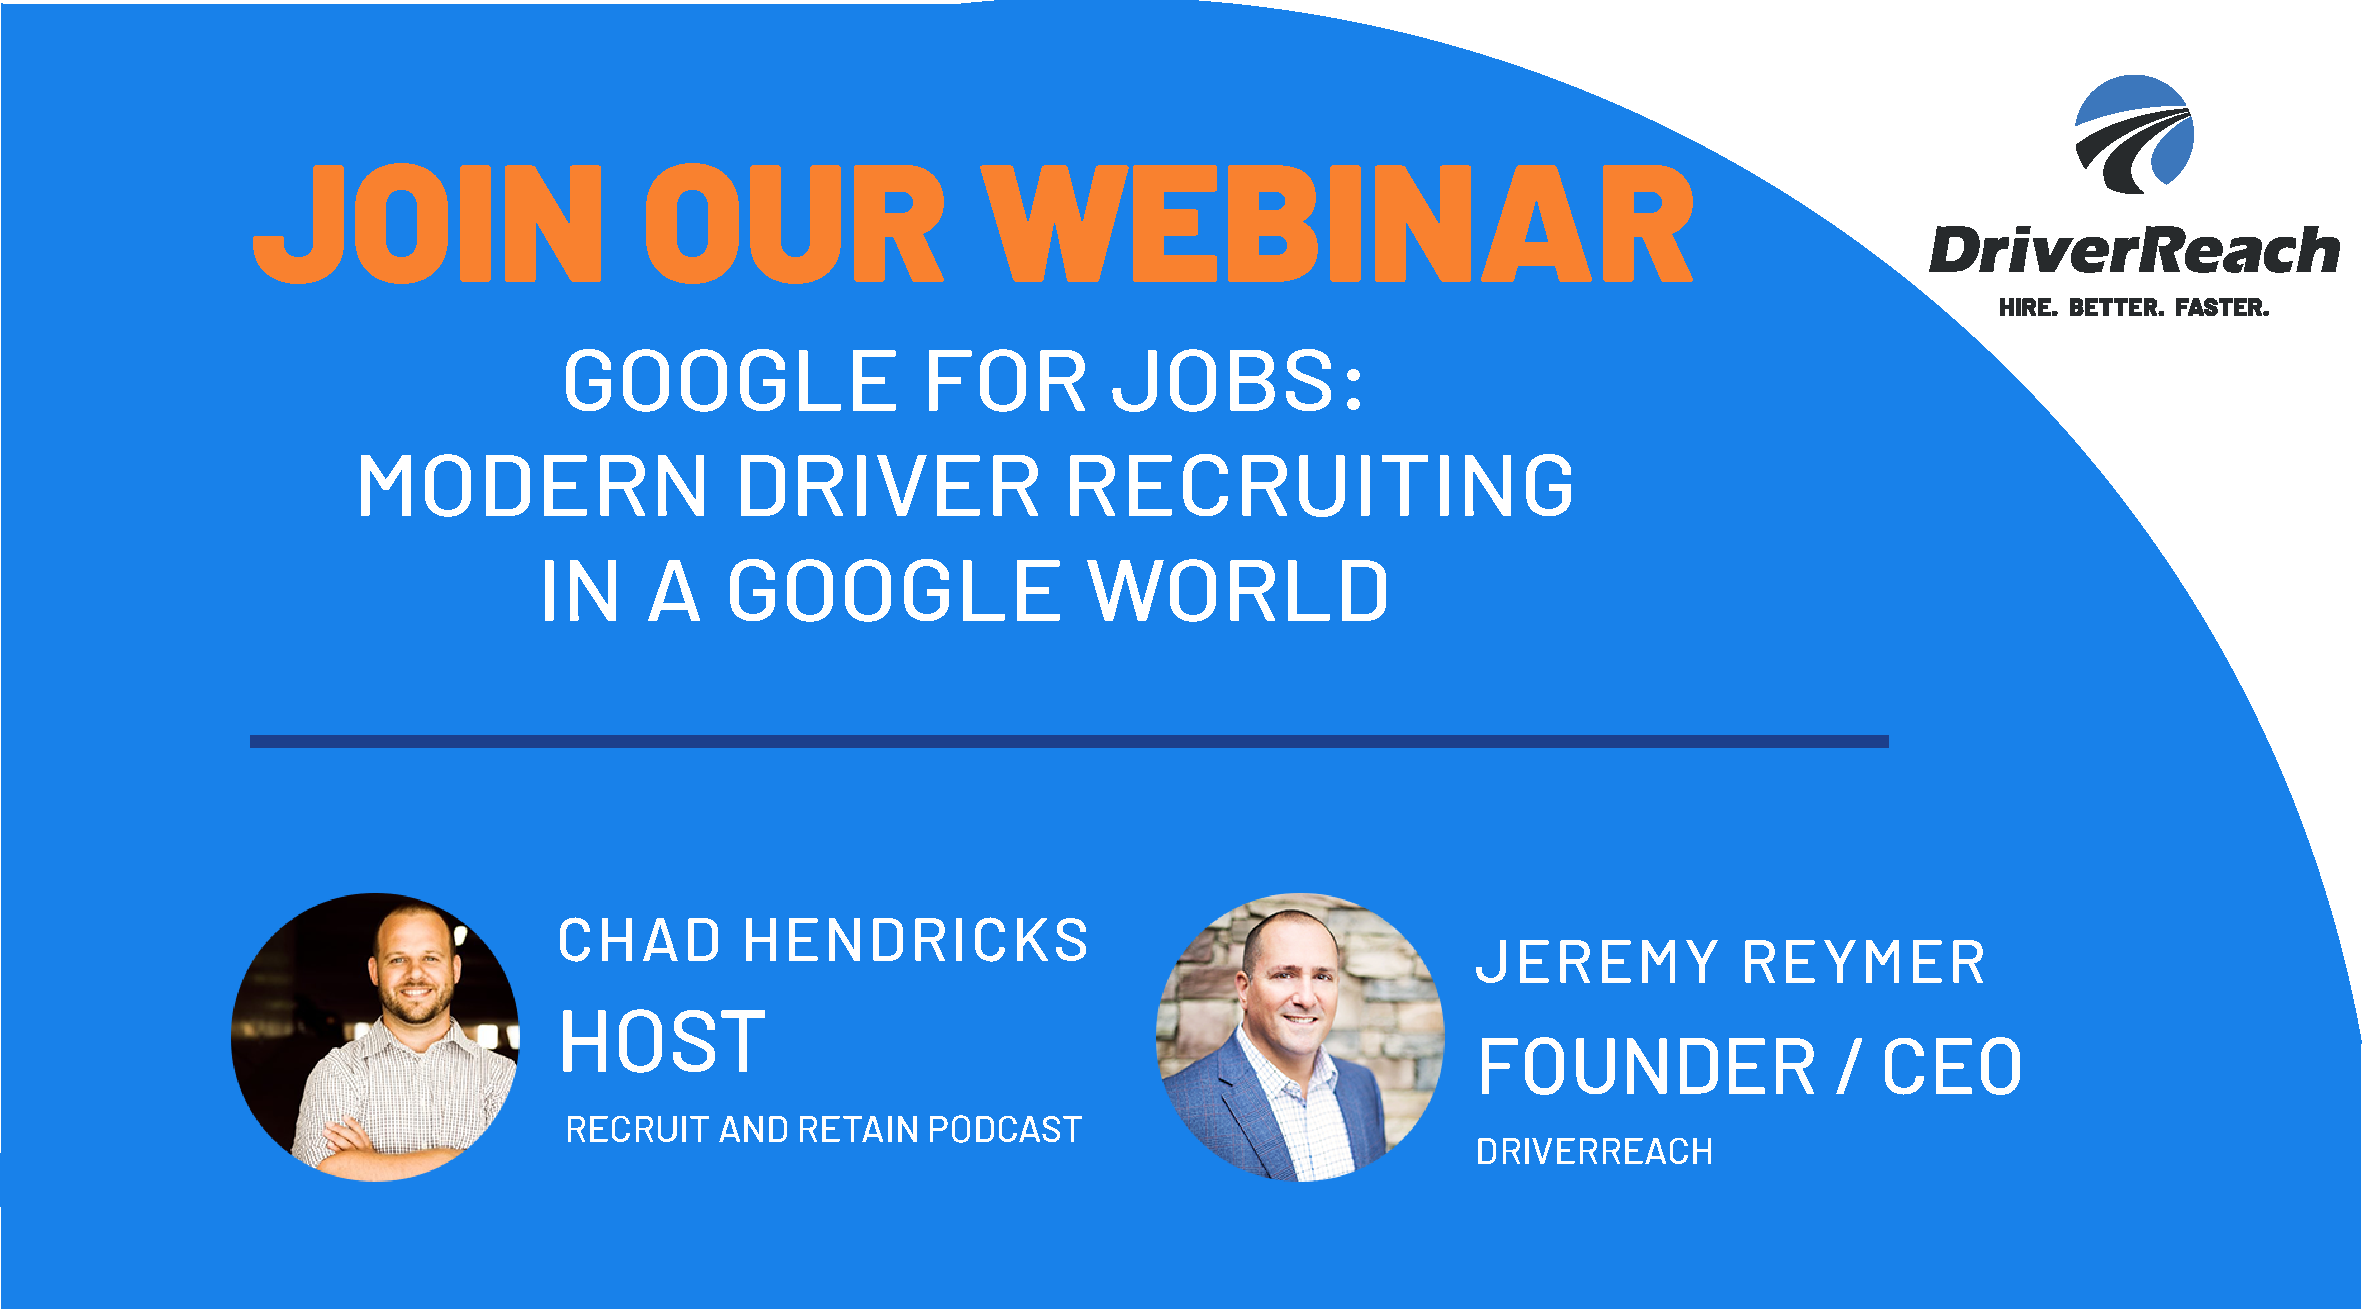 Upcoming Webinar: Google for Jobs—Modern Driver Recruiting in a Google World